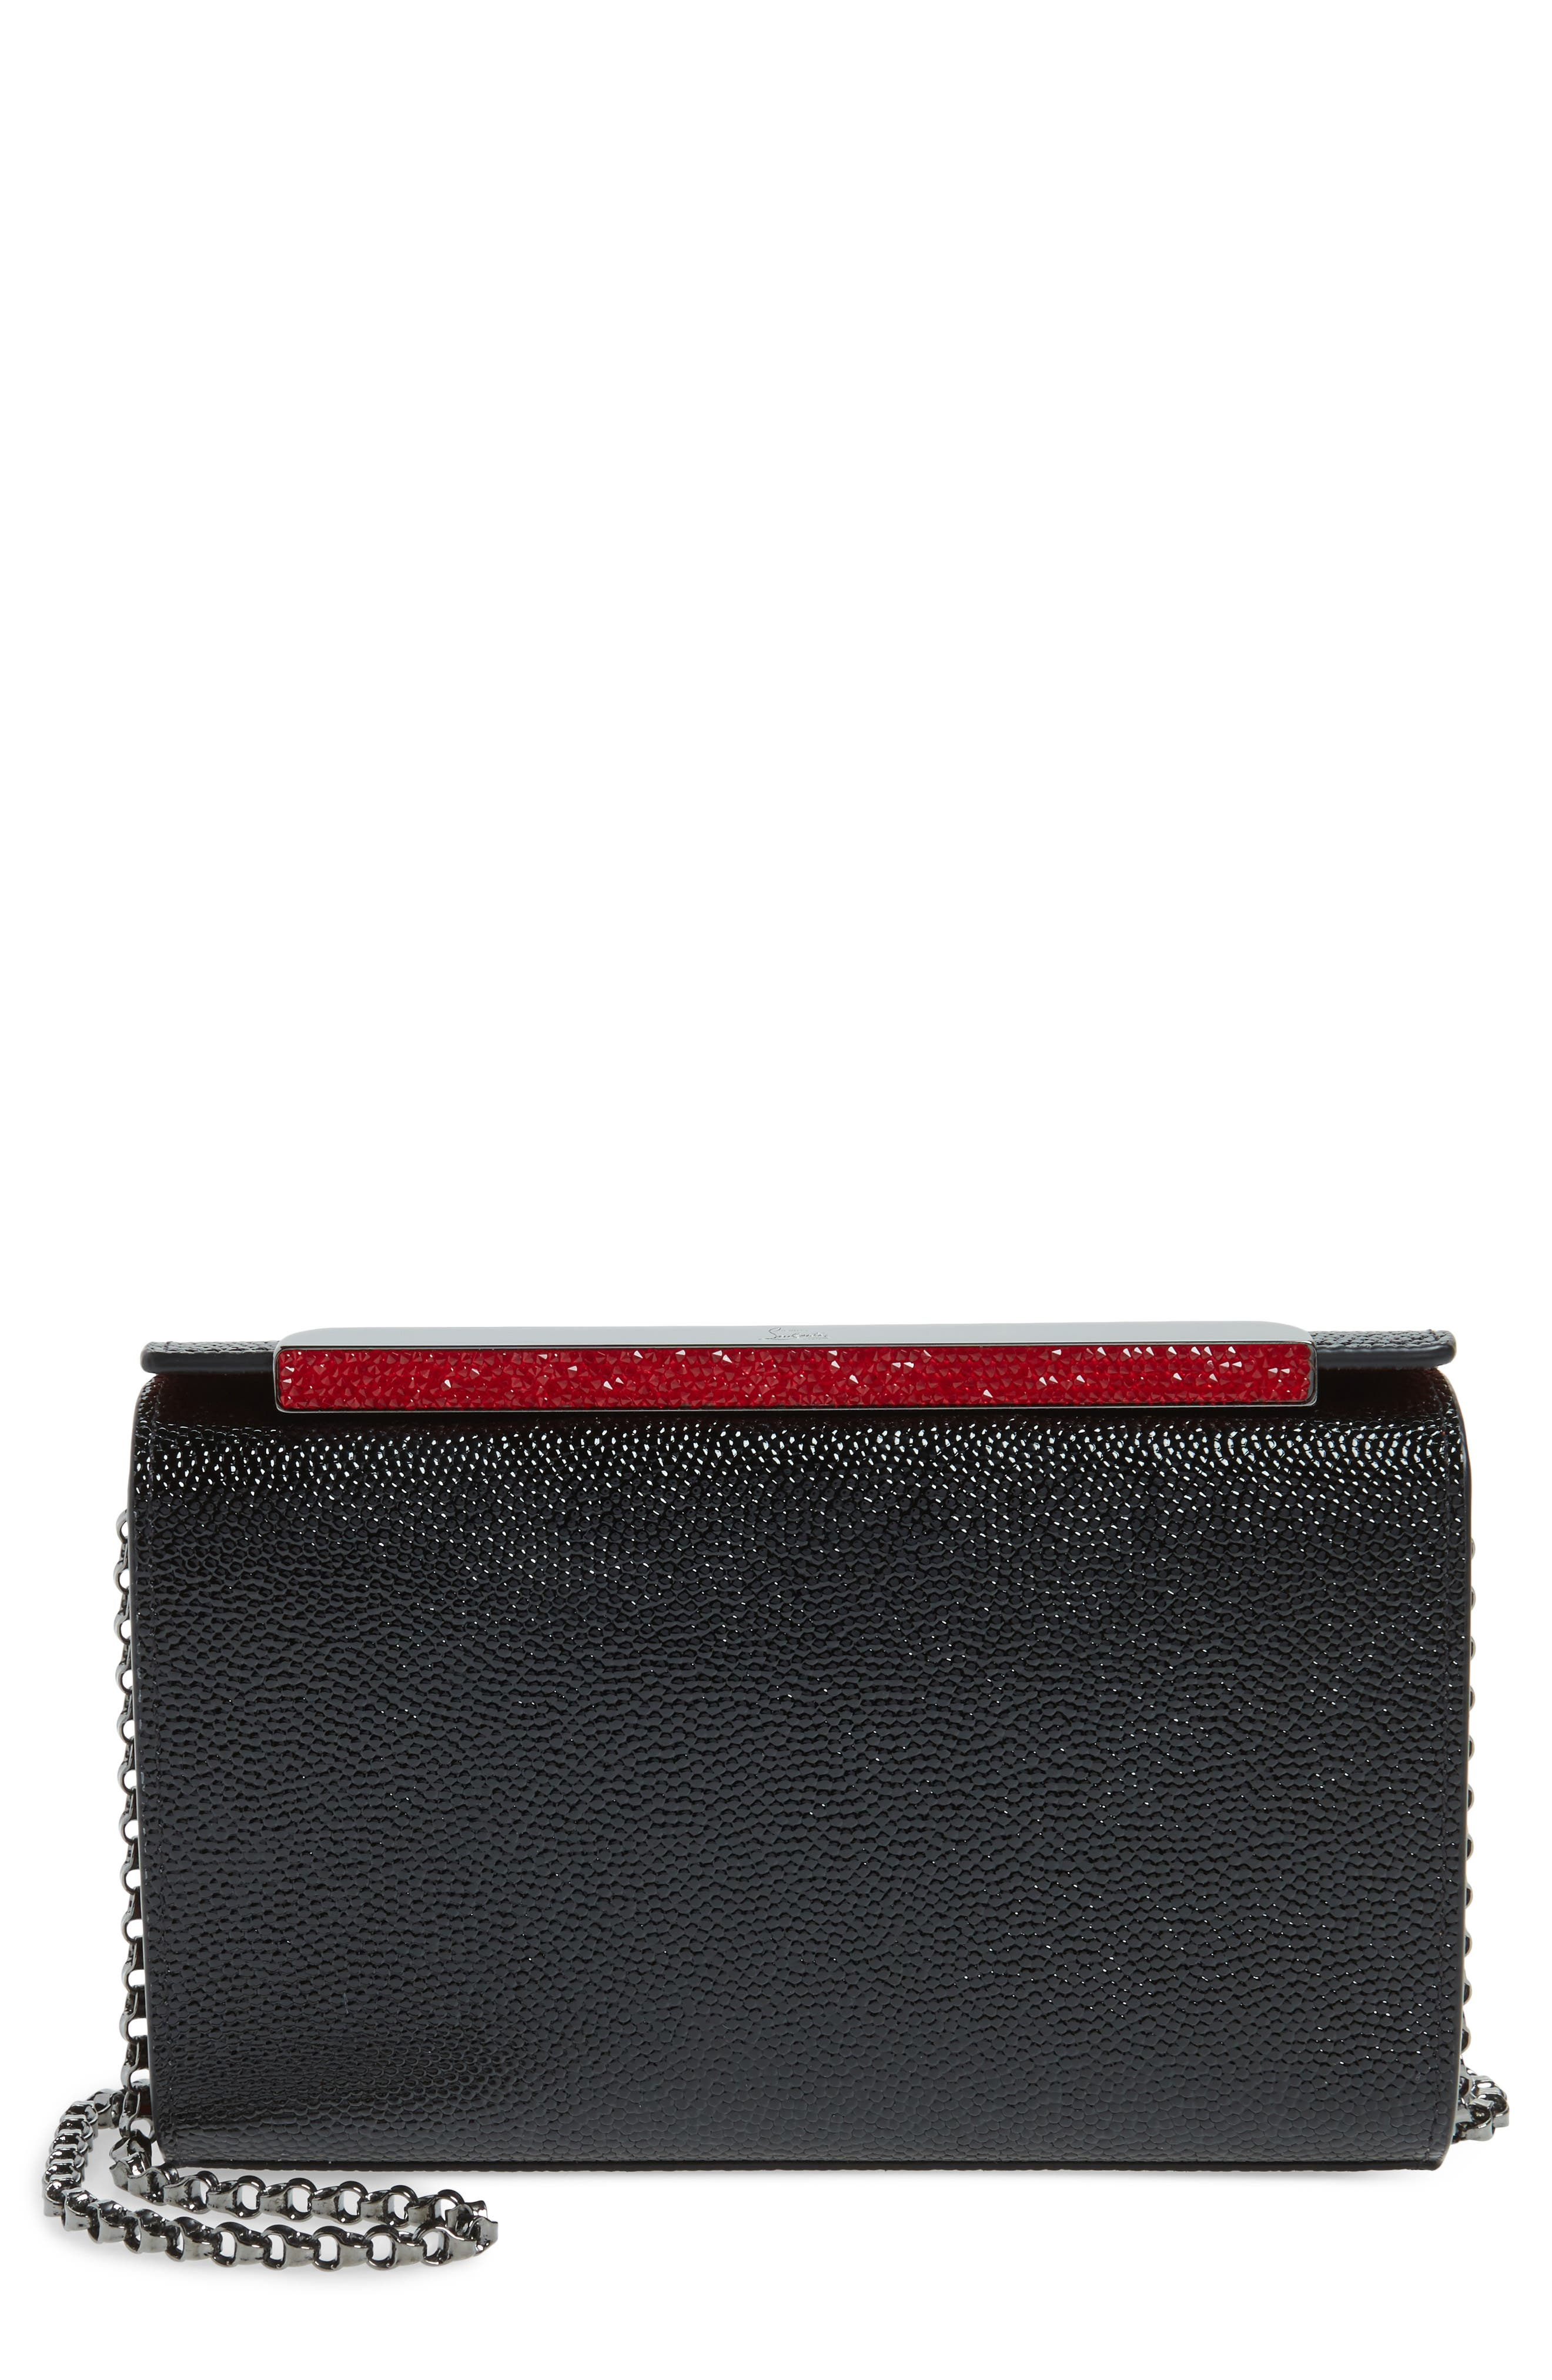 Christian Louboutin Small Vanite Calfskin Leather Clutch